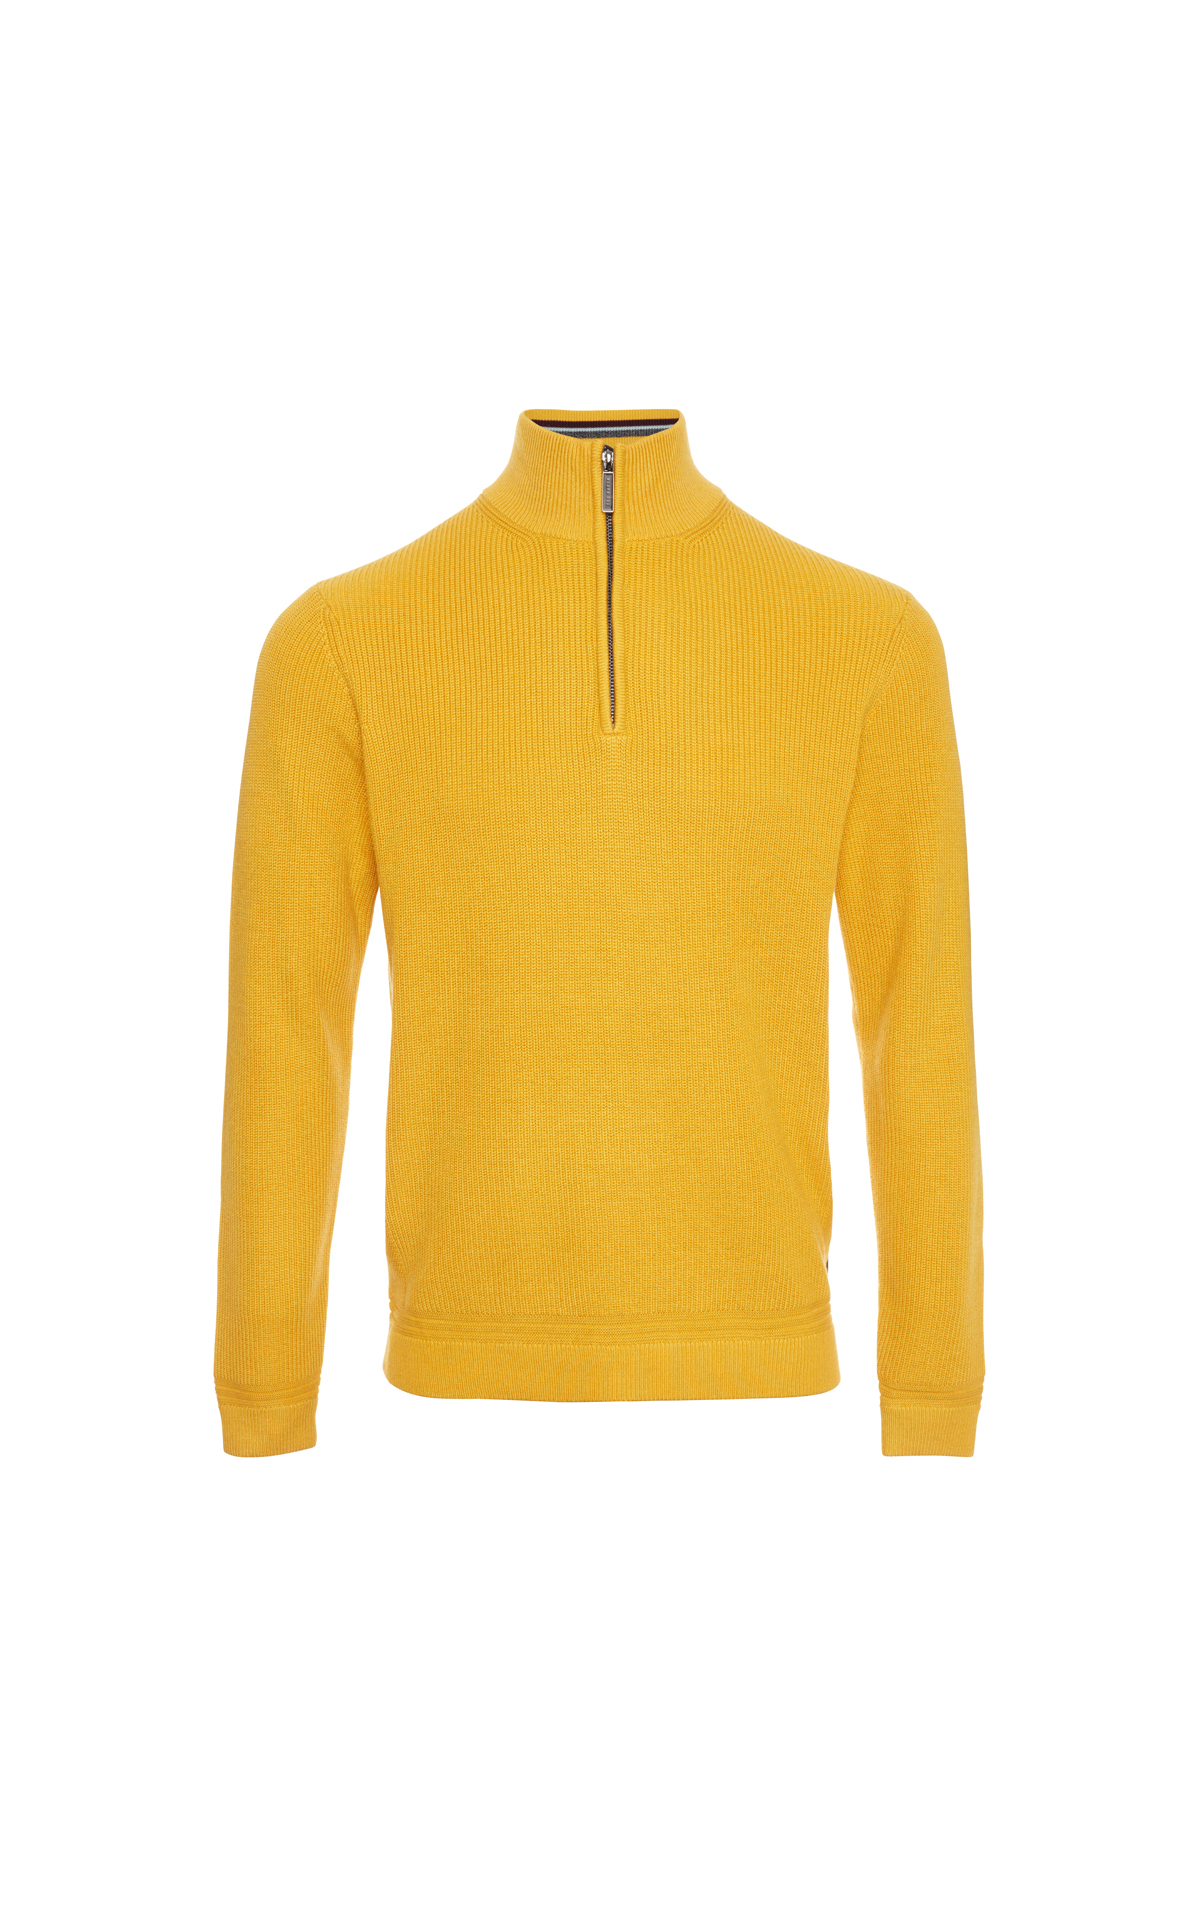 Ted Baker  Yellow neck jumper from Bicester Village